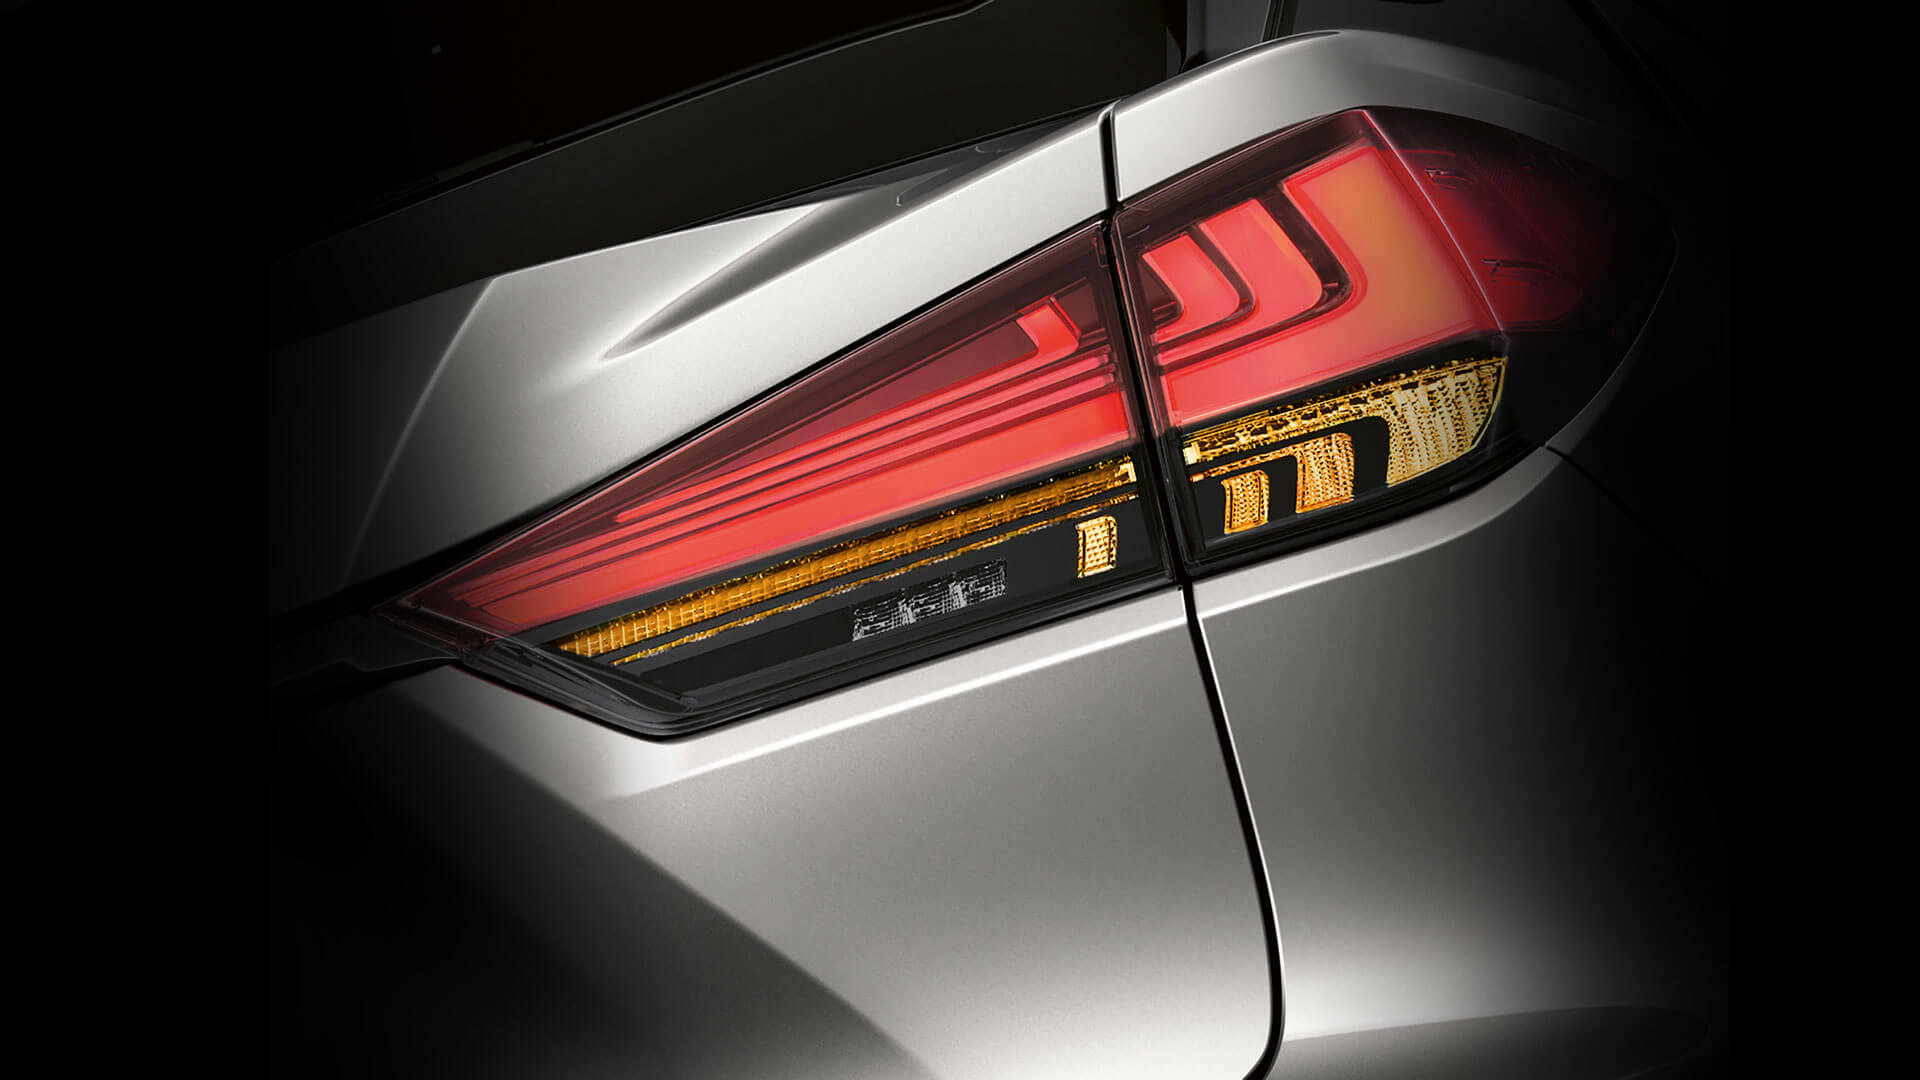 2019 lexus rxl hotspot led rear lights